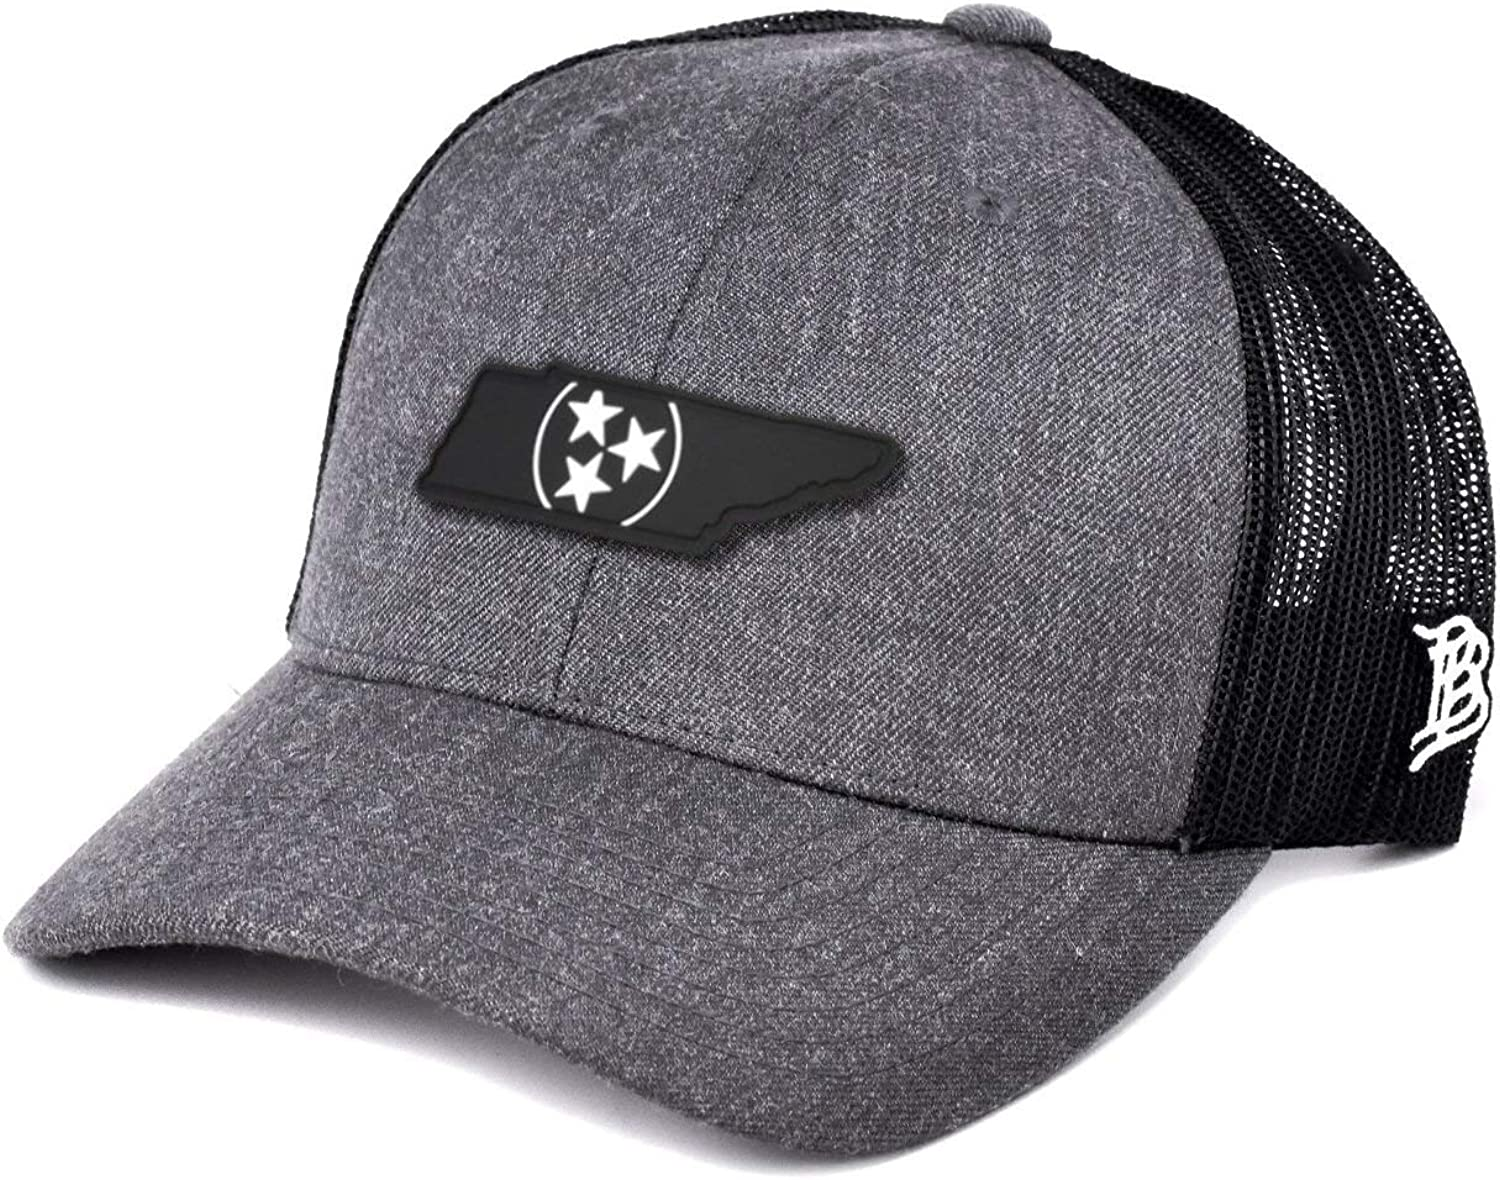 Branded Bills Vintage Rogue Hats, Tennessee